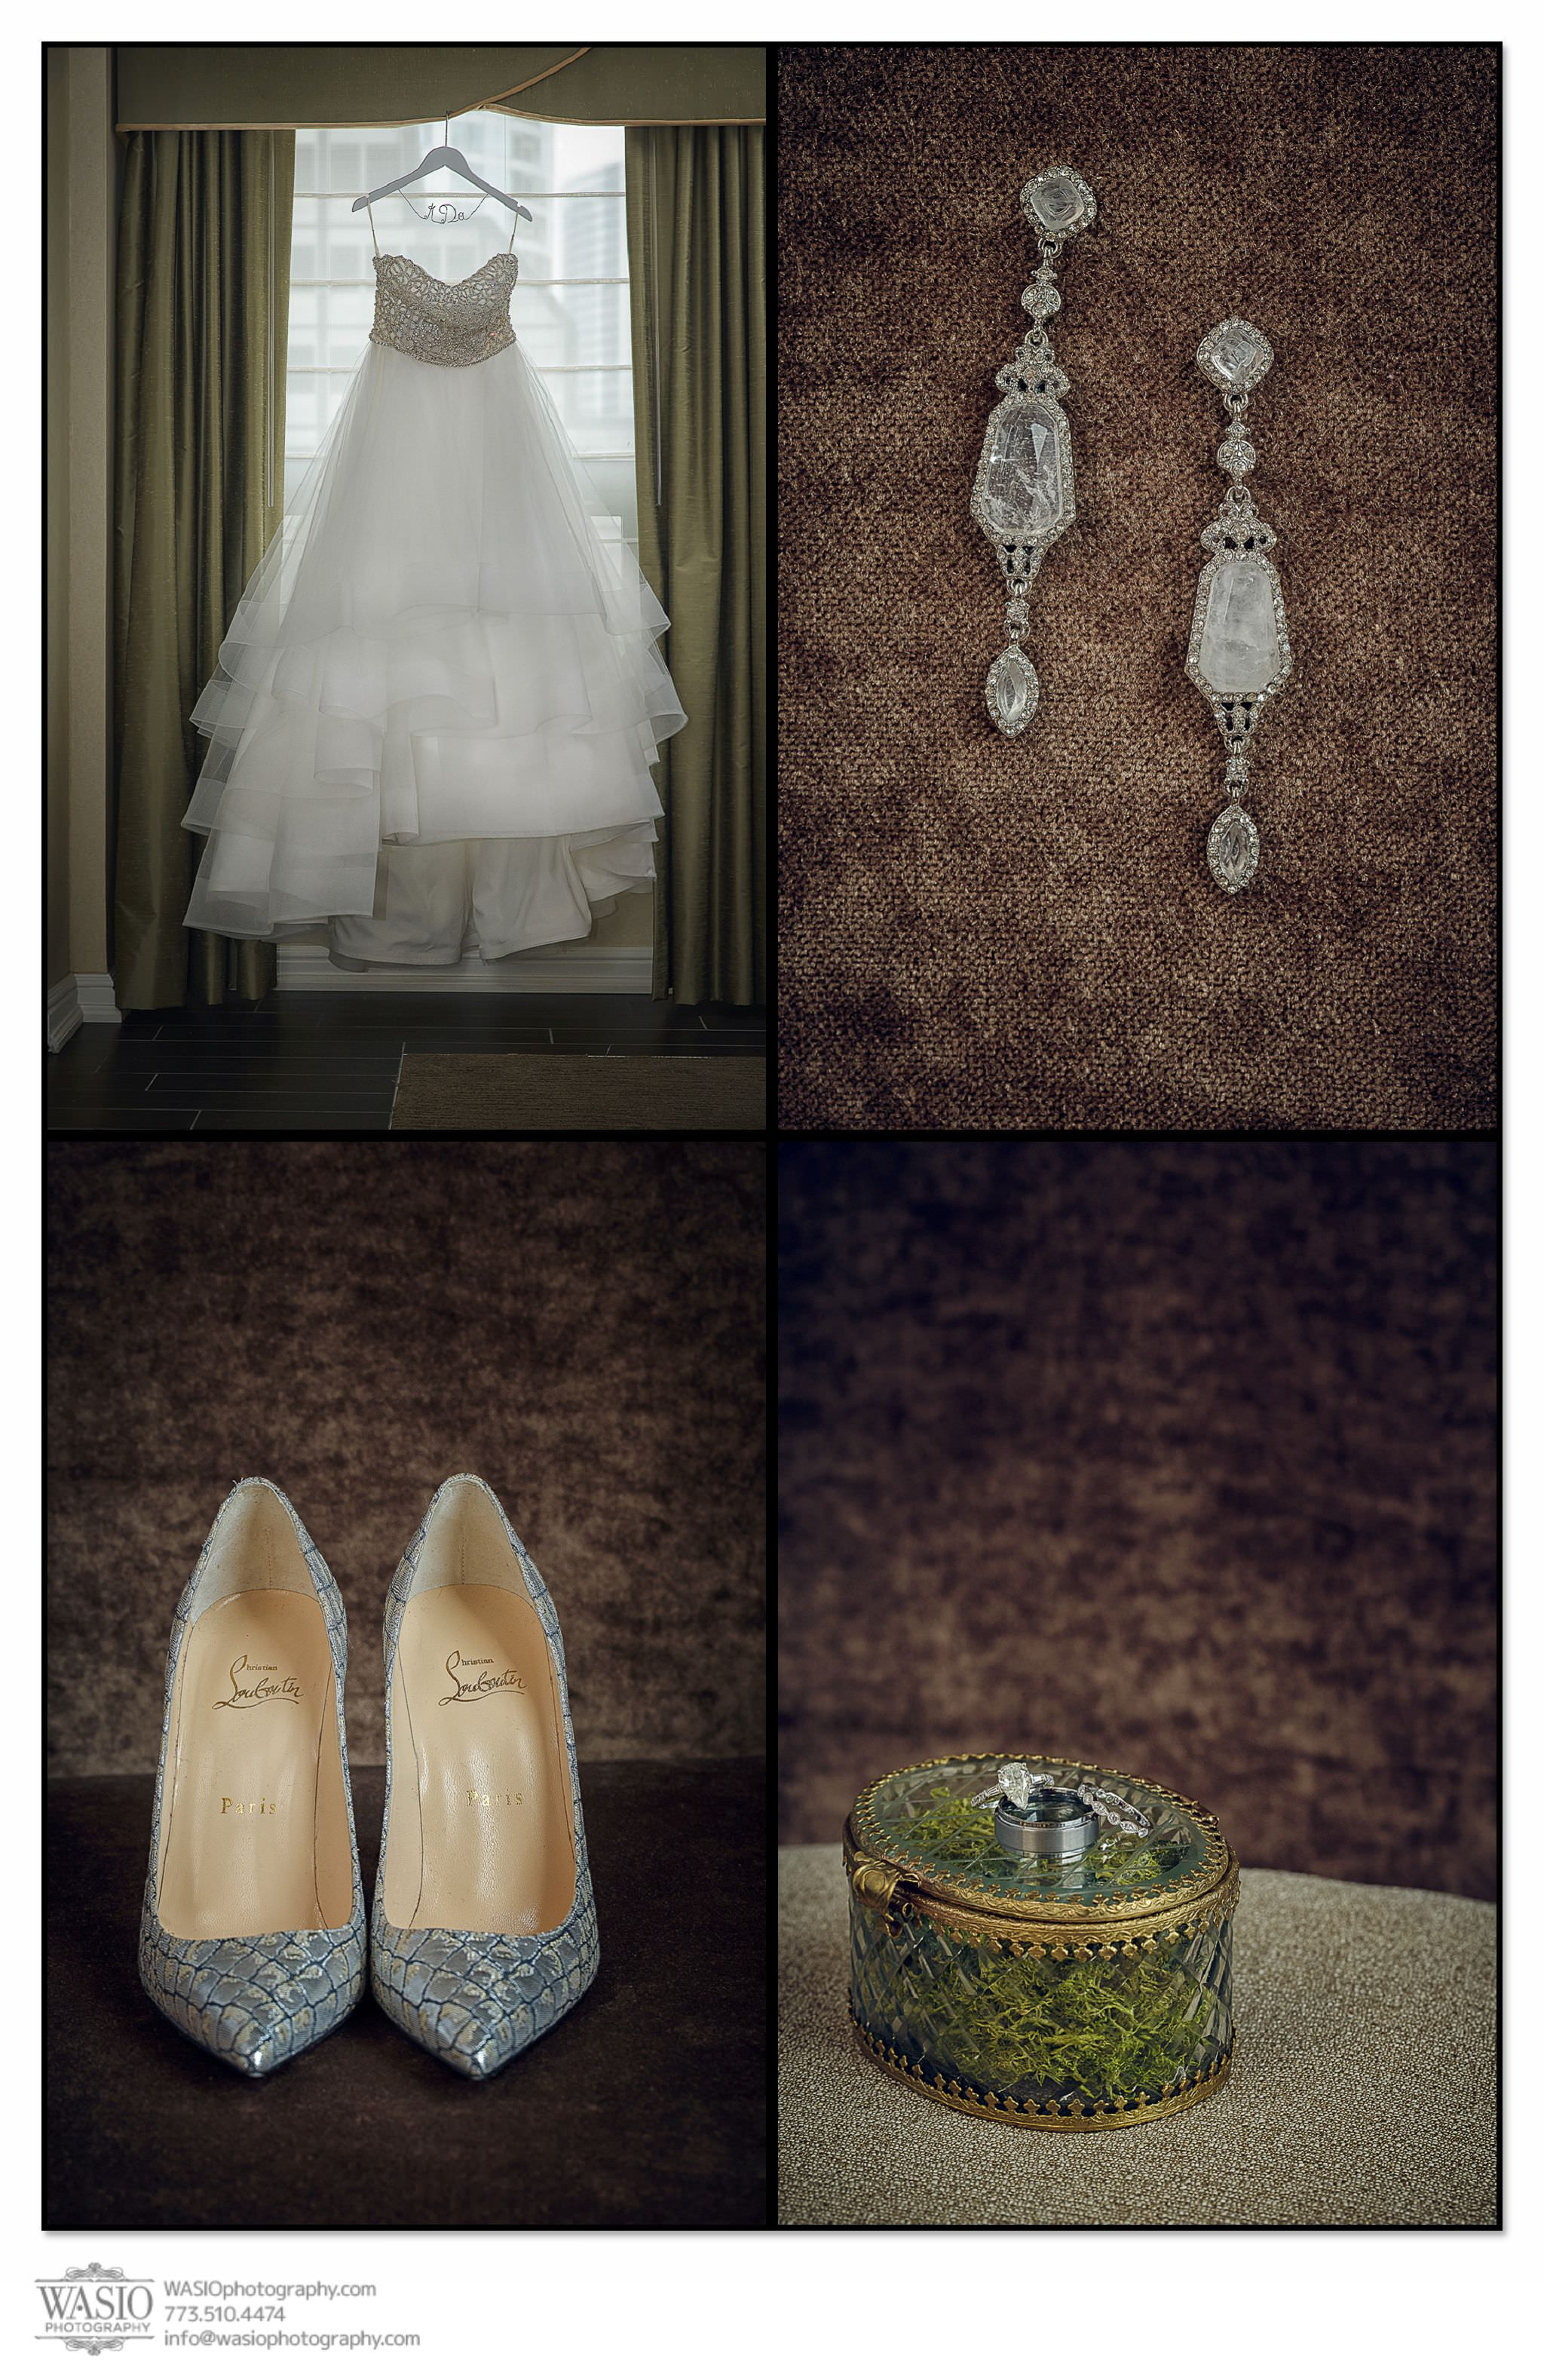 venue-one-chicago-wedding-bridal-details-bella-bianca-red-bottoms-louboutin-etsy-Hayley-Paige-52 Venue One Chicago Wedding - Katie + Mike